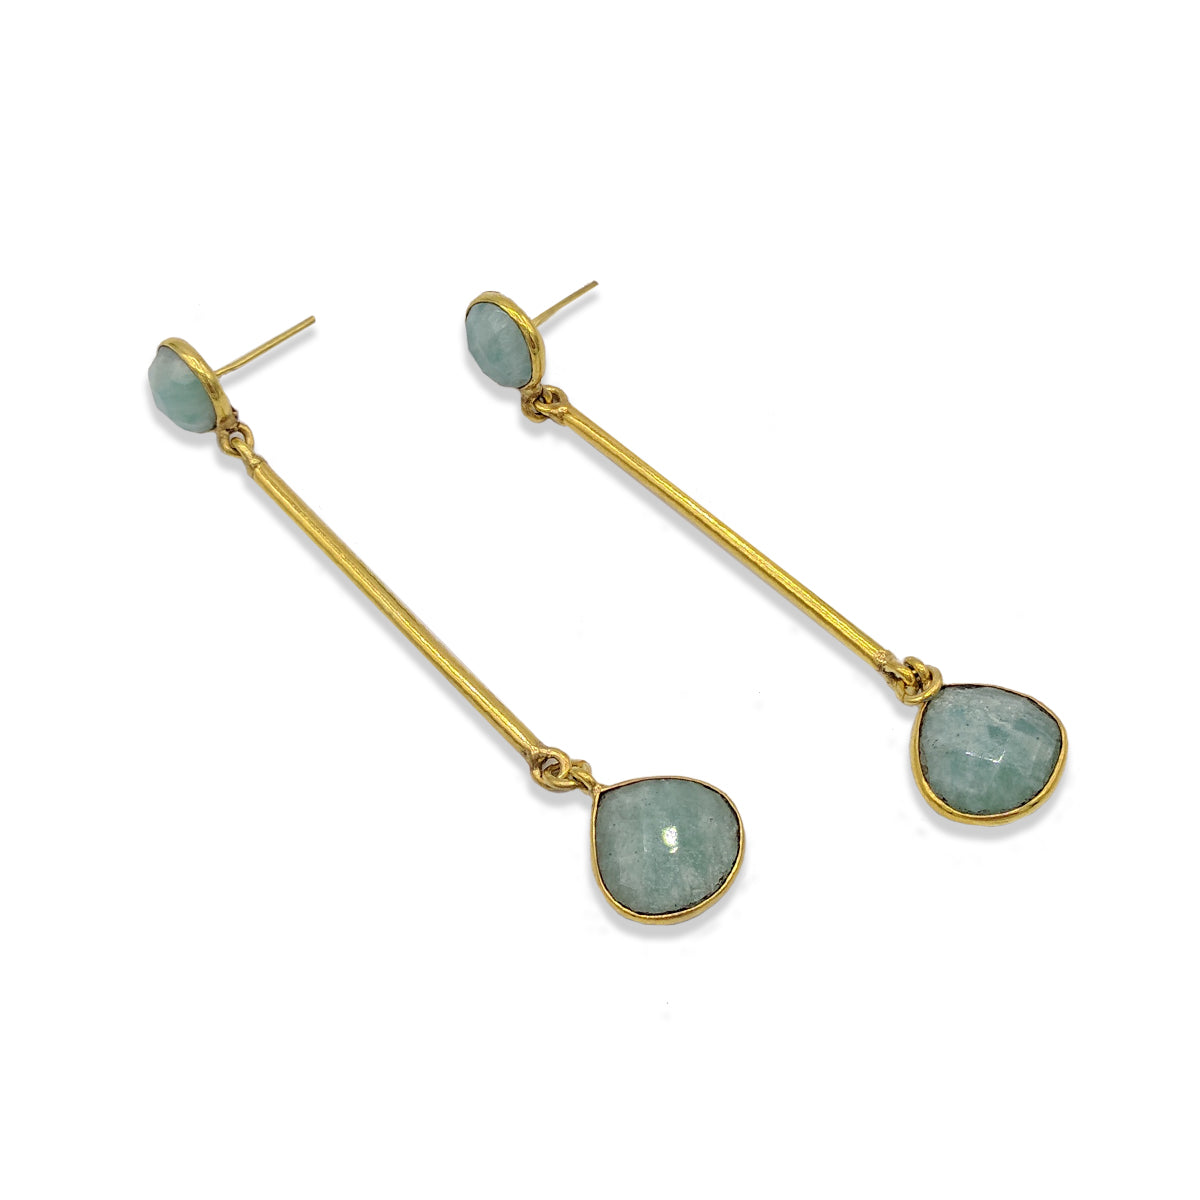 Earring G Drop Stone Earrings